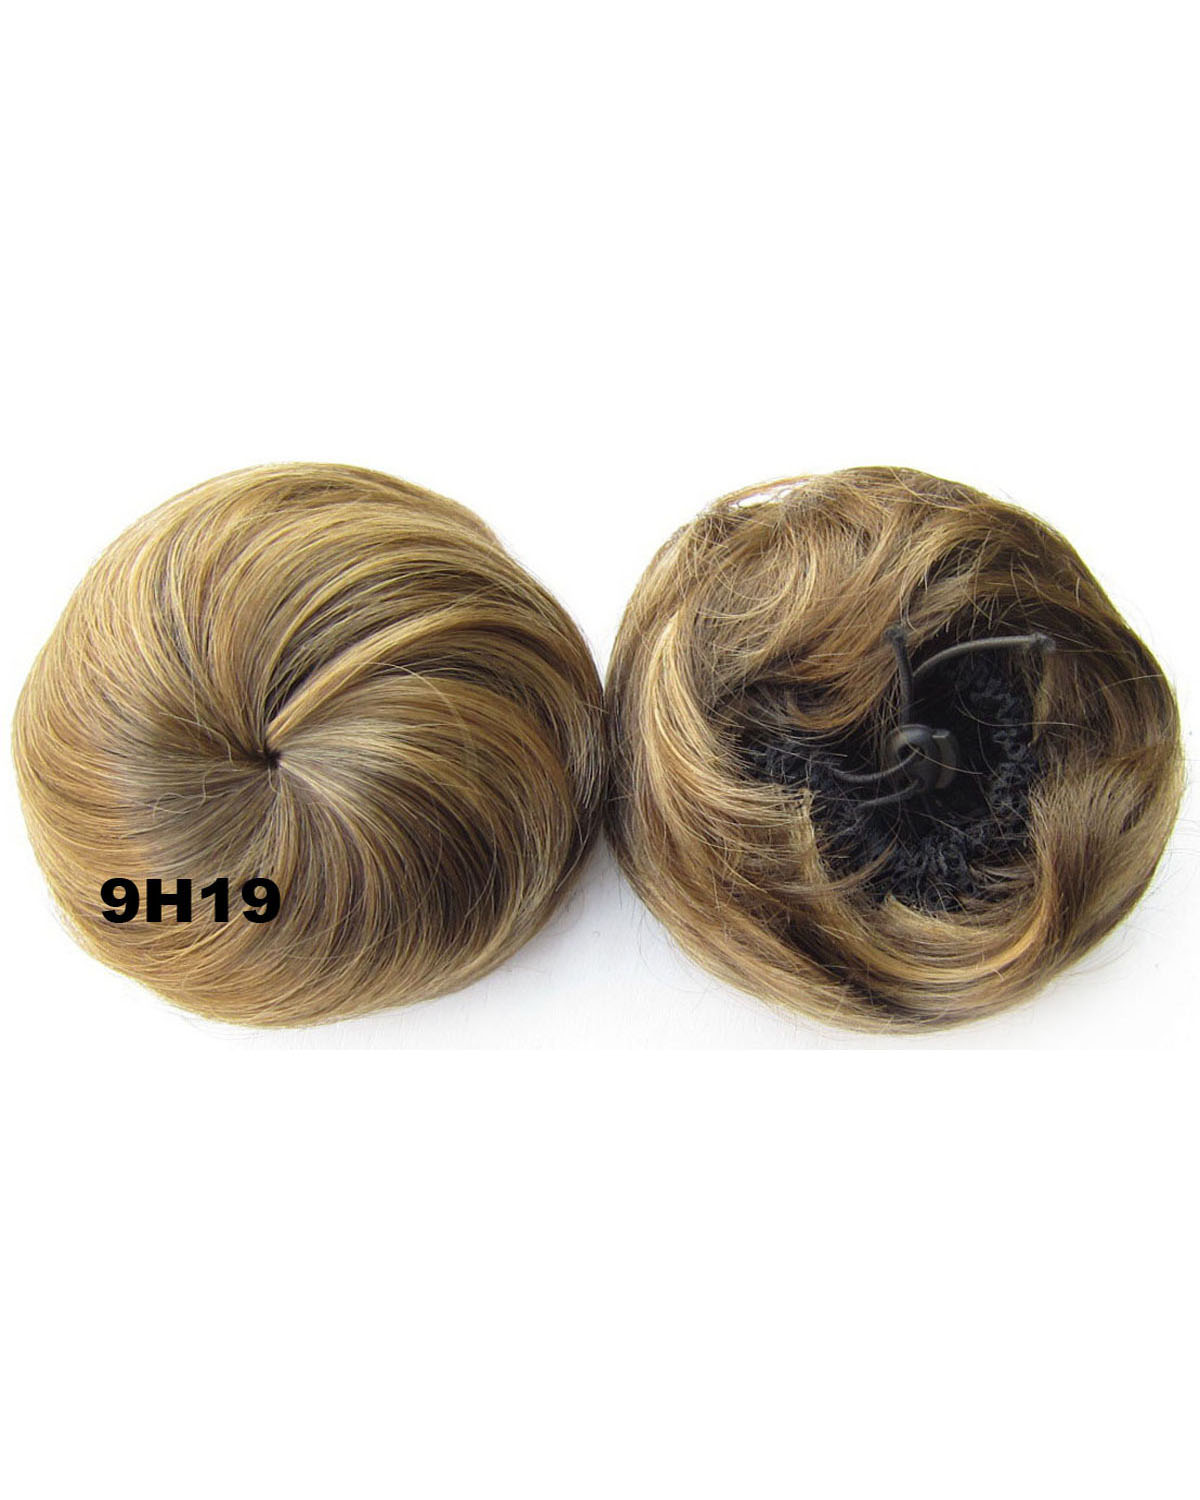 Ladies  Clean and Fashioanble Curly and Short Hair Buns Drawstring Synthetic Hair Extension Bride Scrunchies  9H19